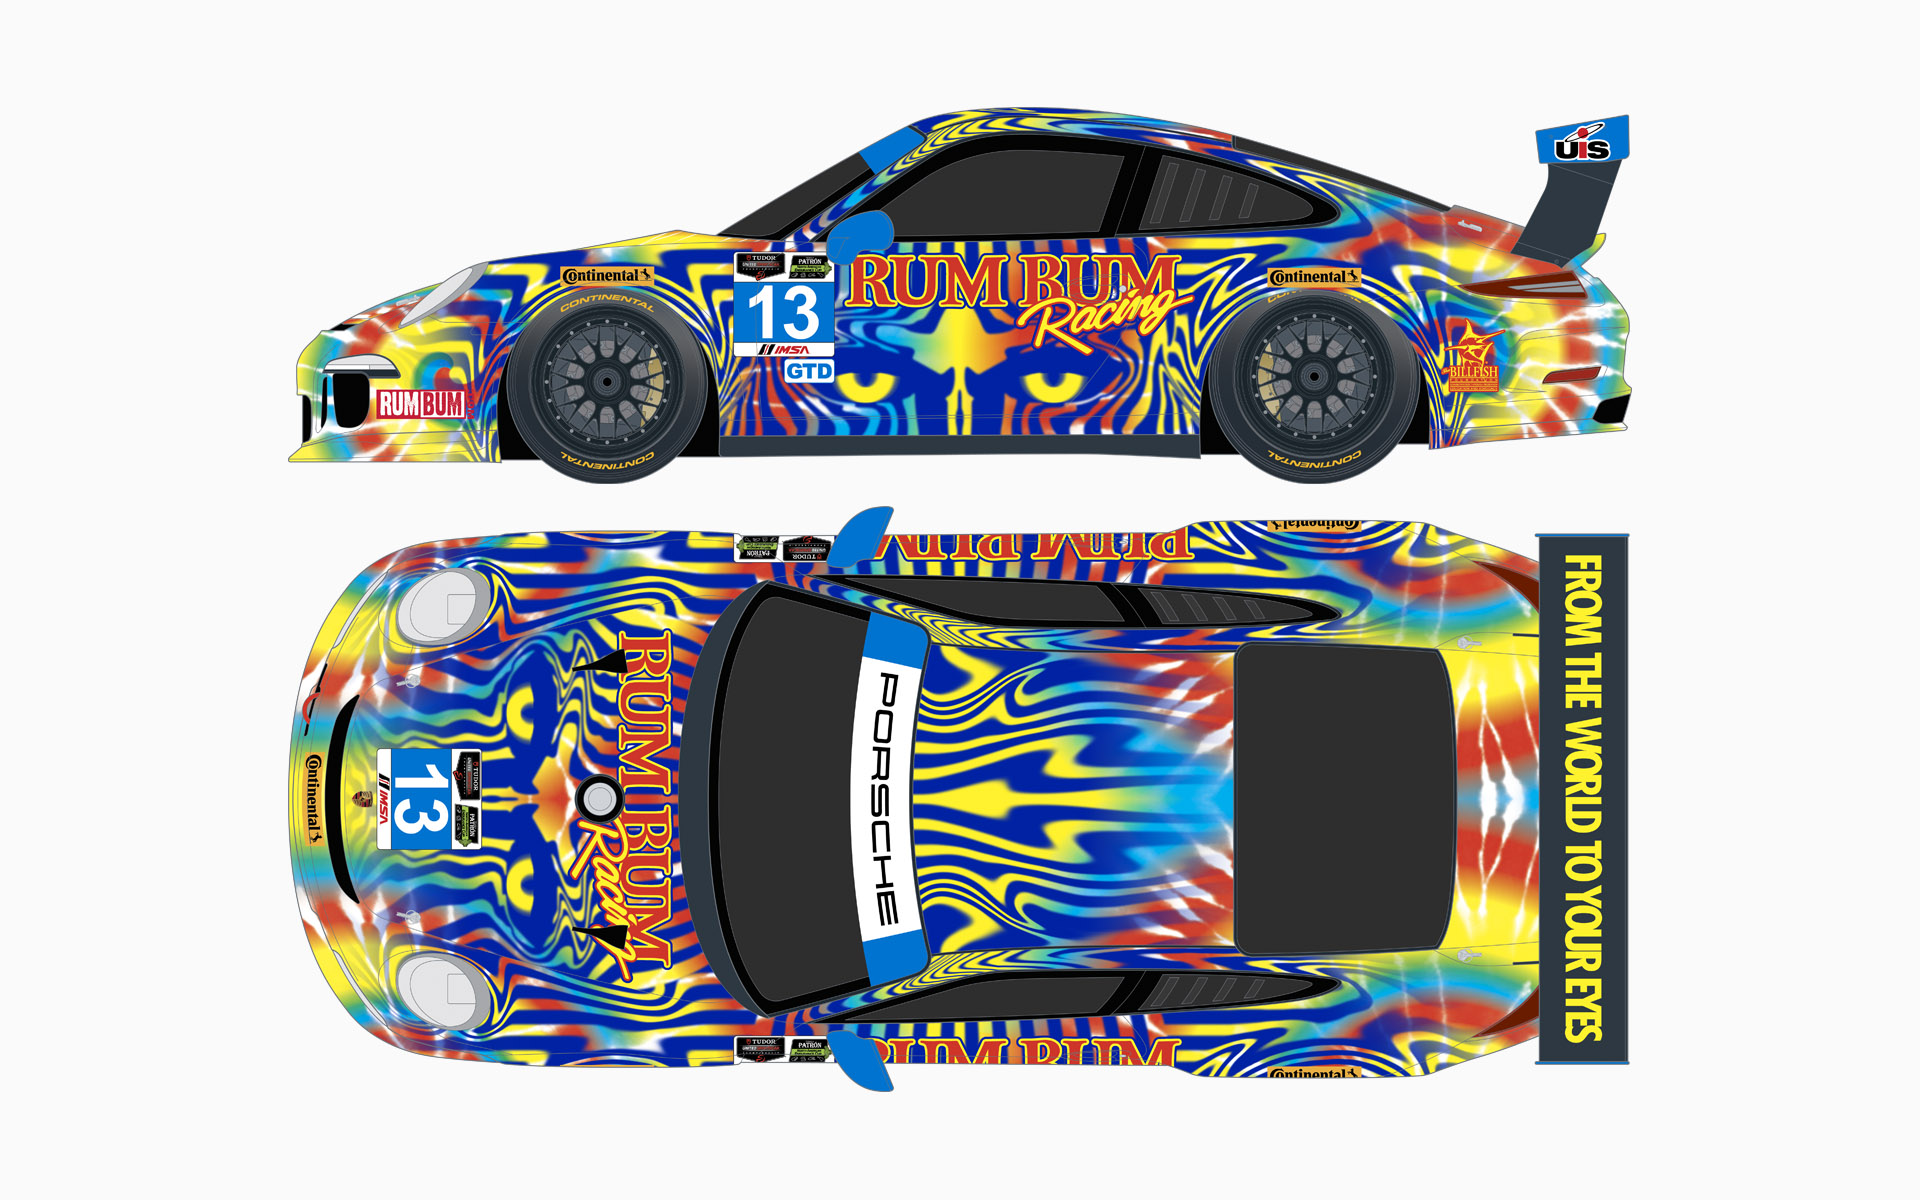 2014 Rum Bum Racing Porsche 911 GT America GTD Livery Elevations